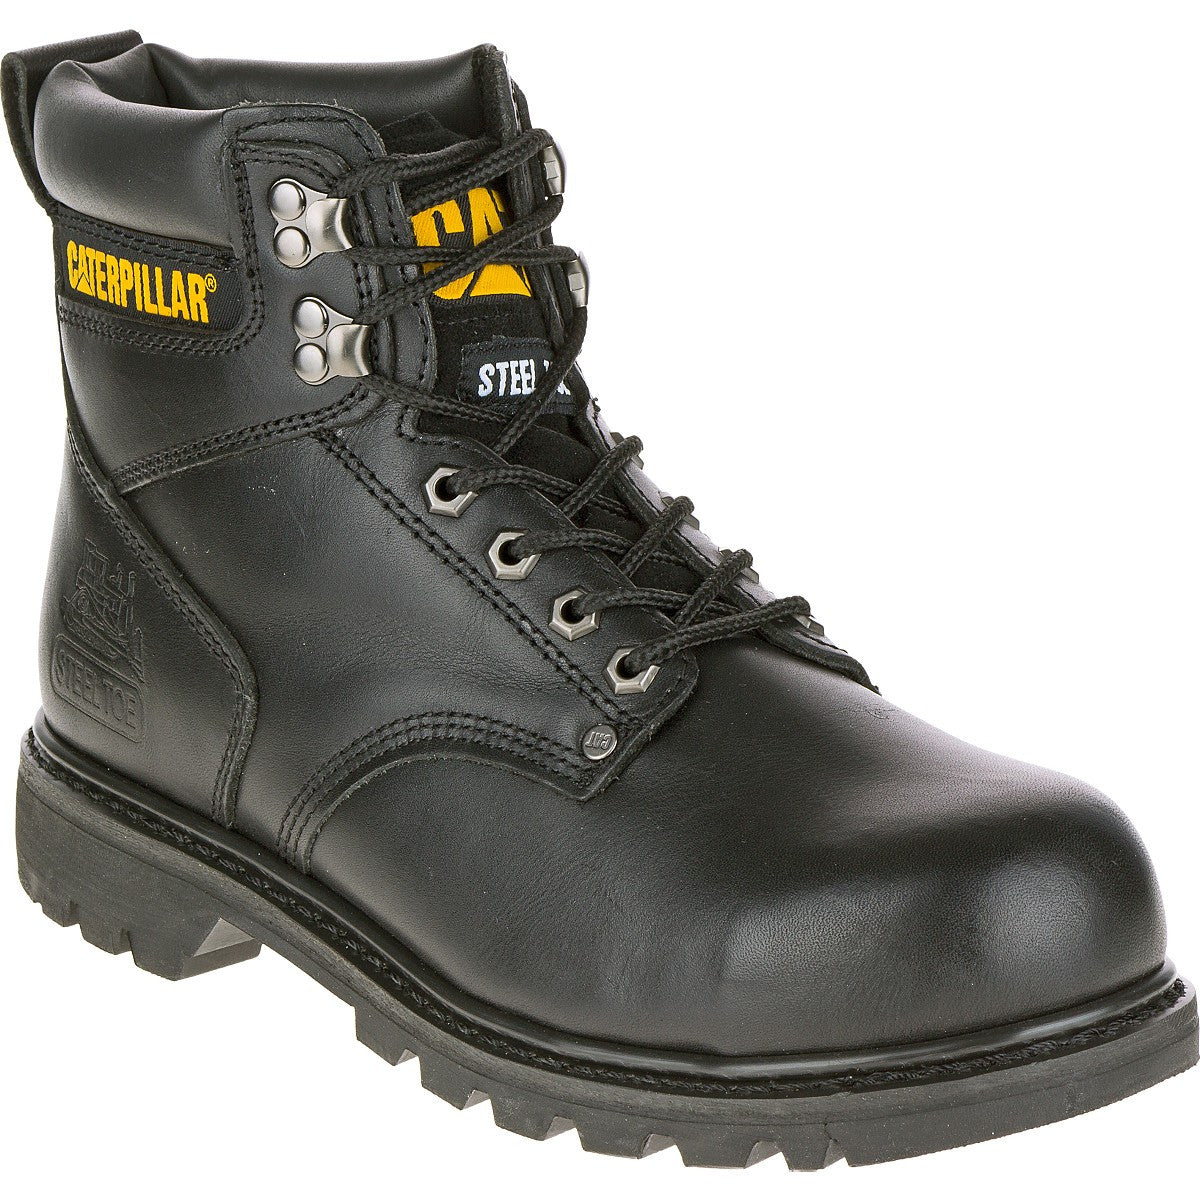 Second Shift Work Boot - Foot Paths Shoes